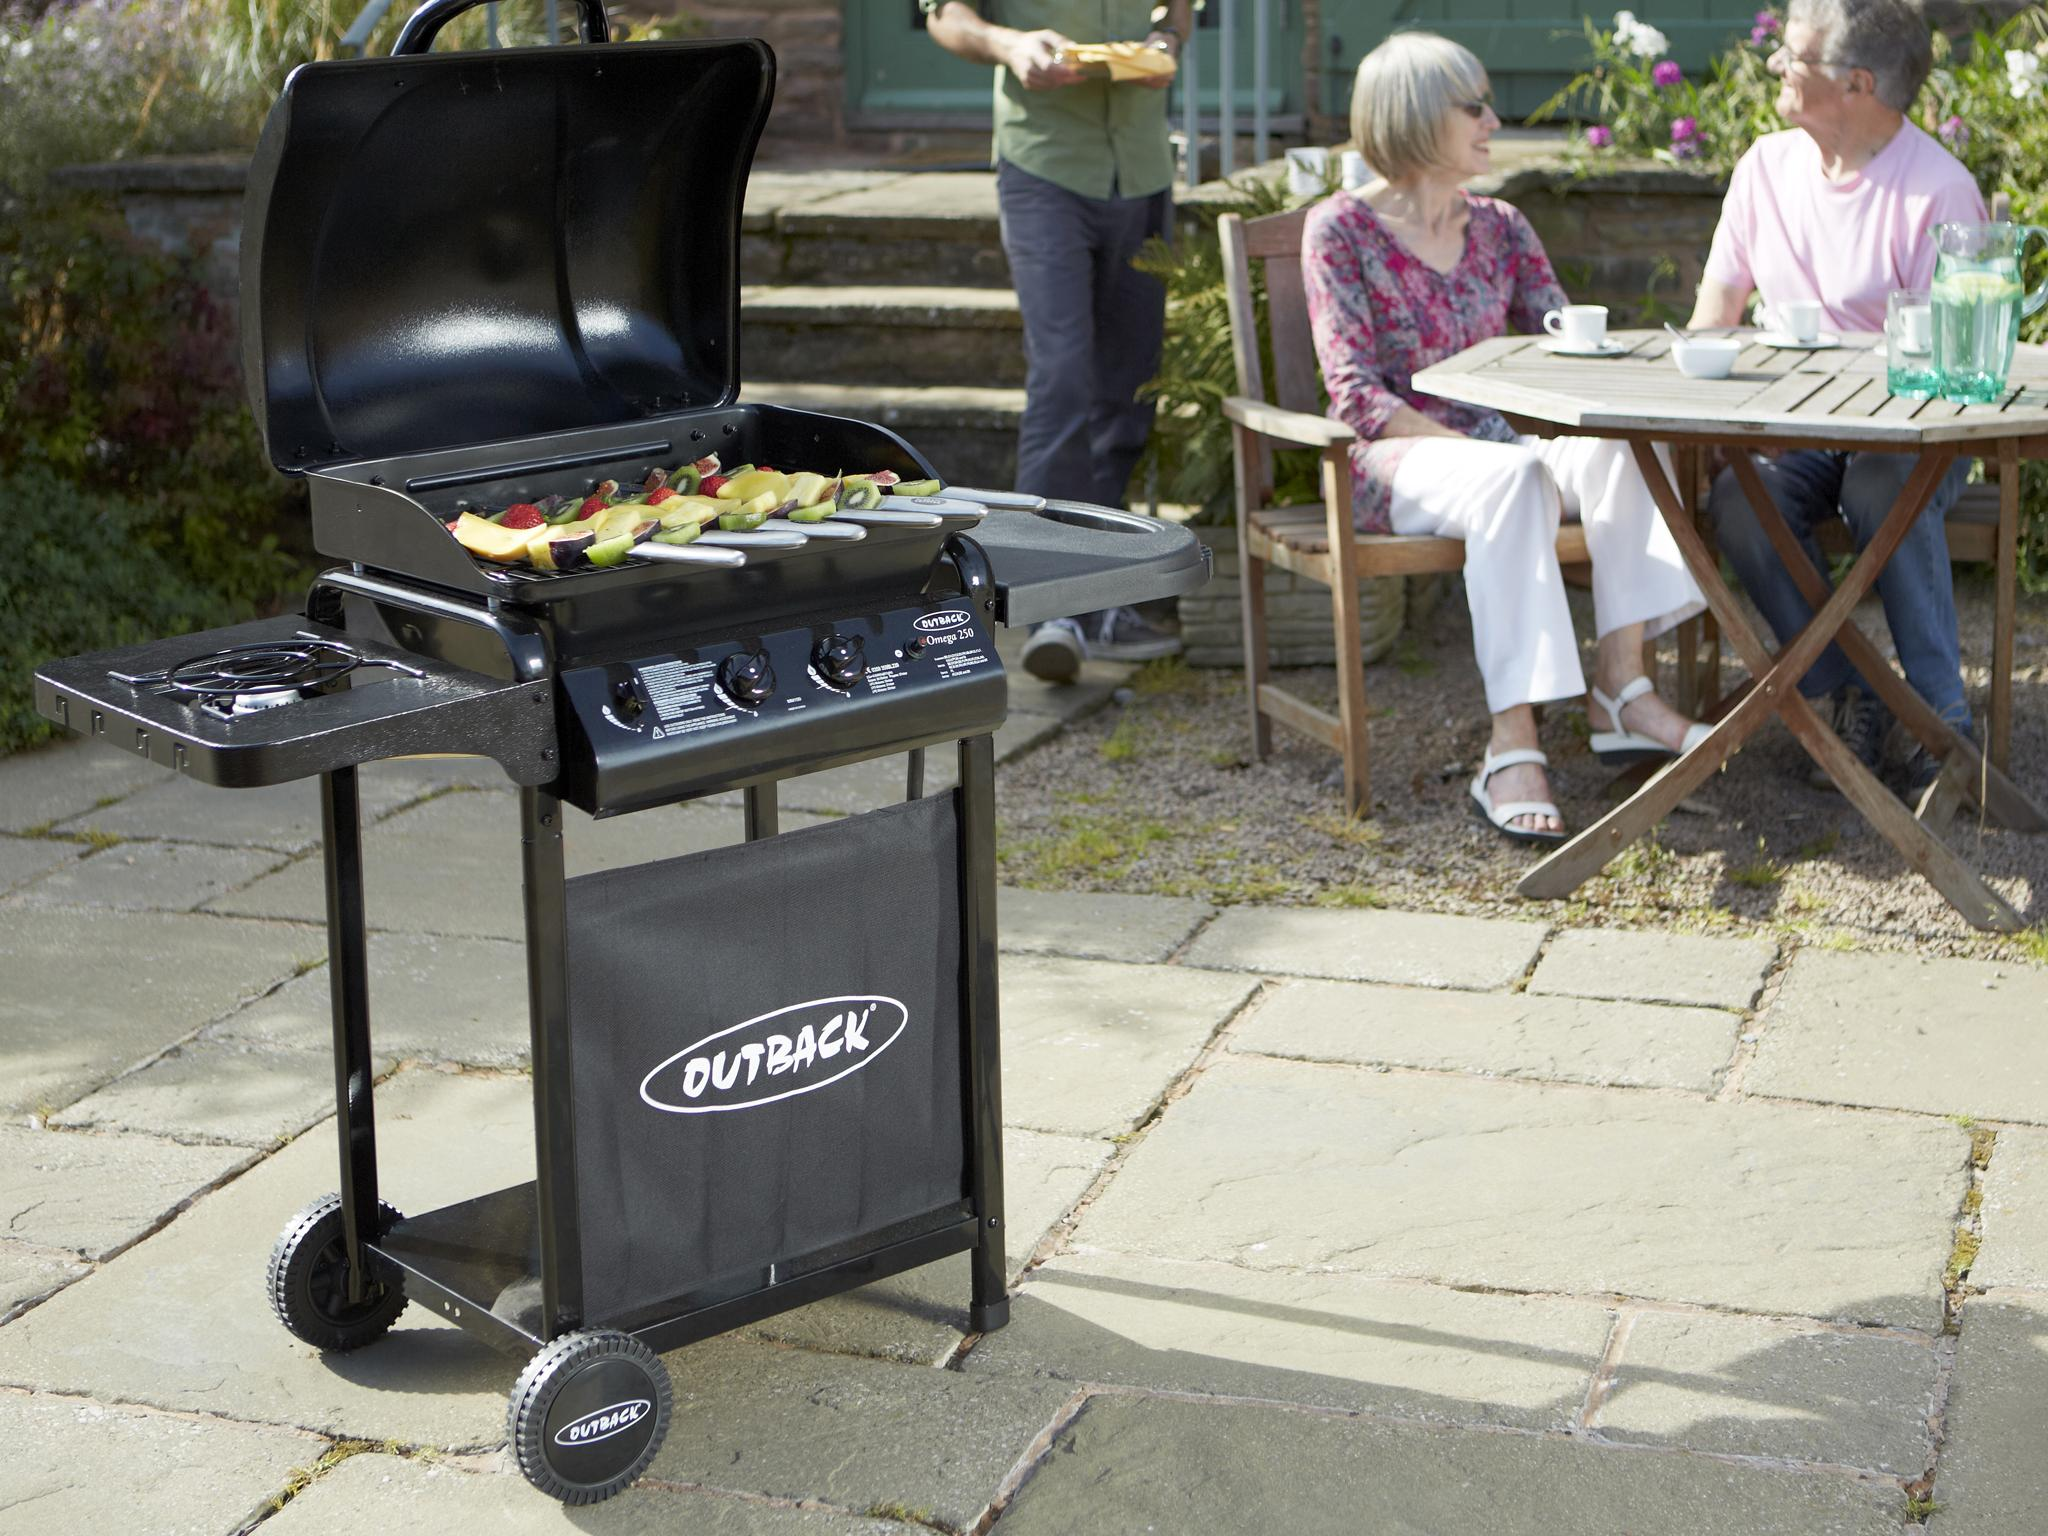 10 ways to upgrade your grill kit